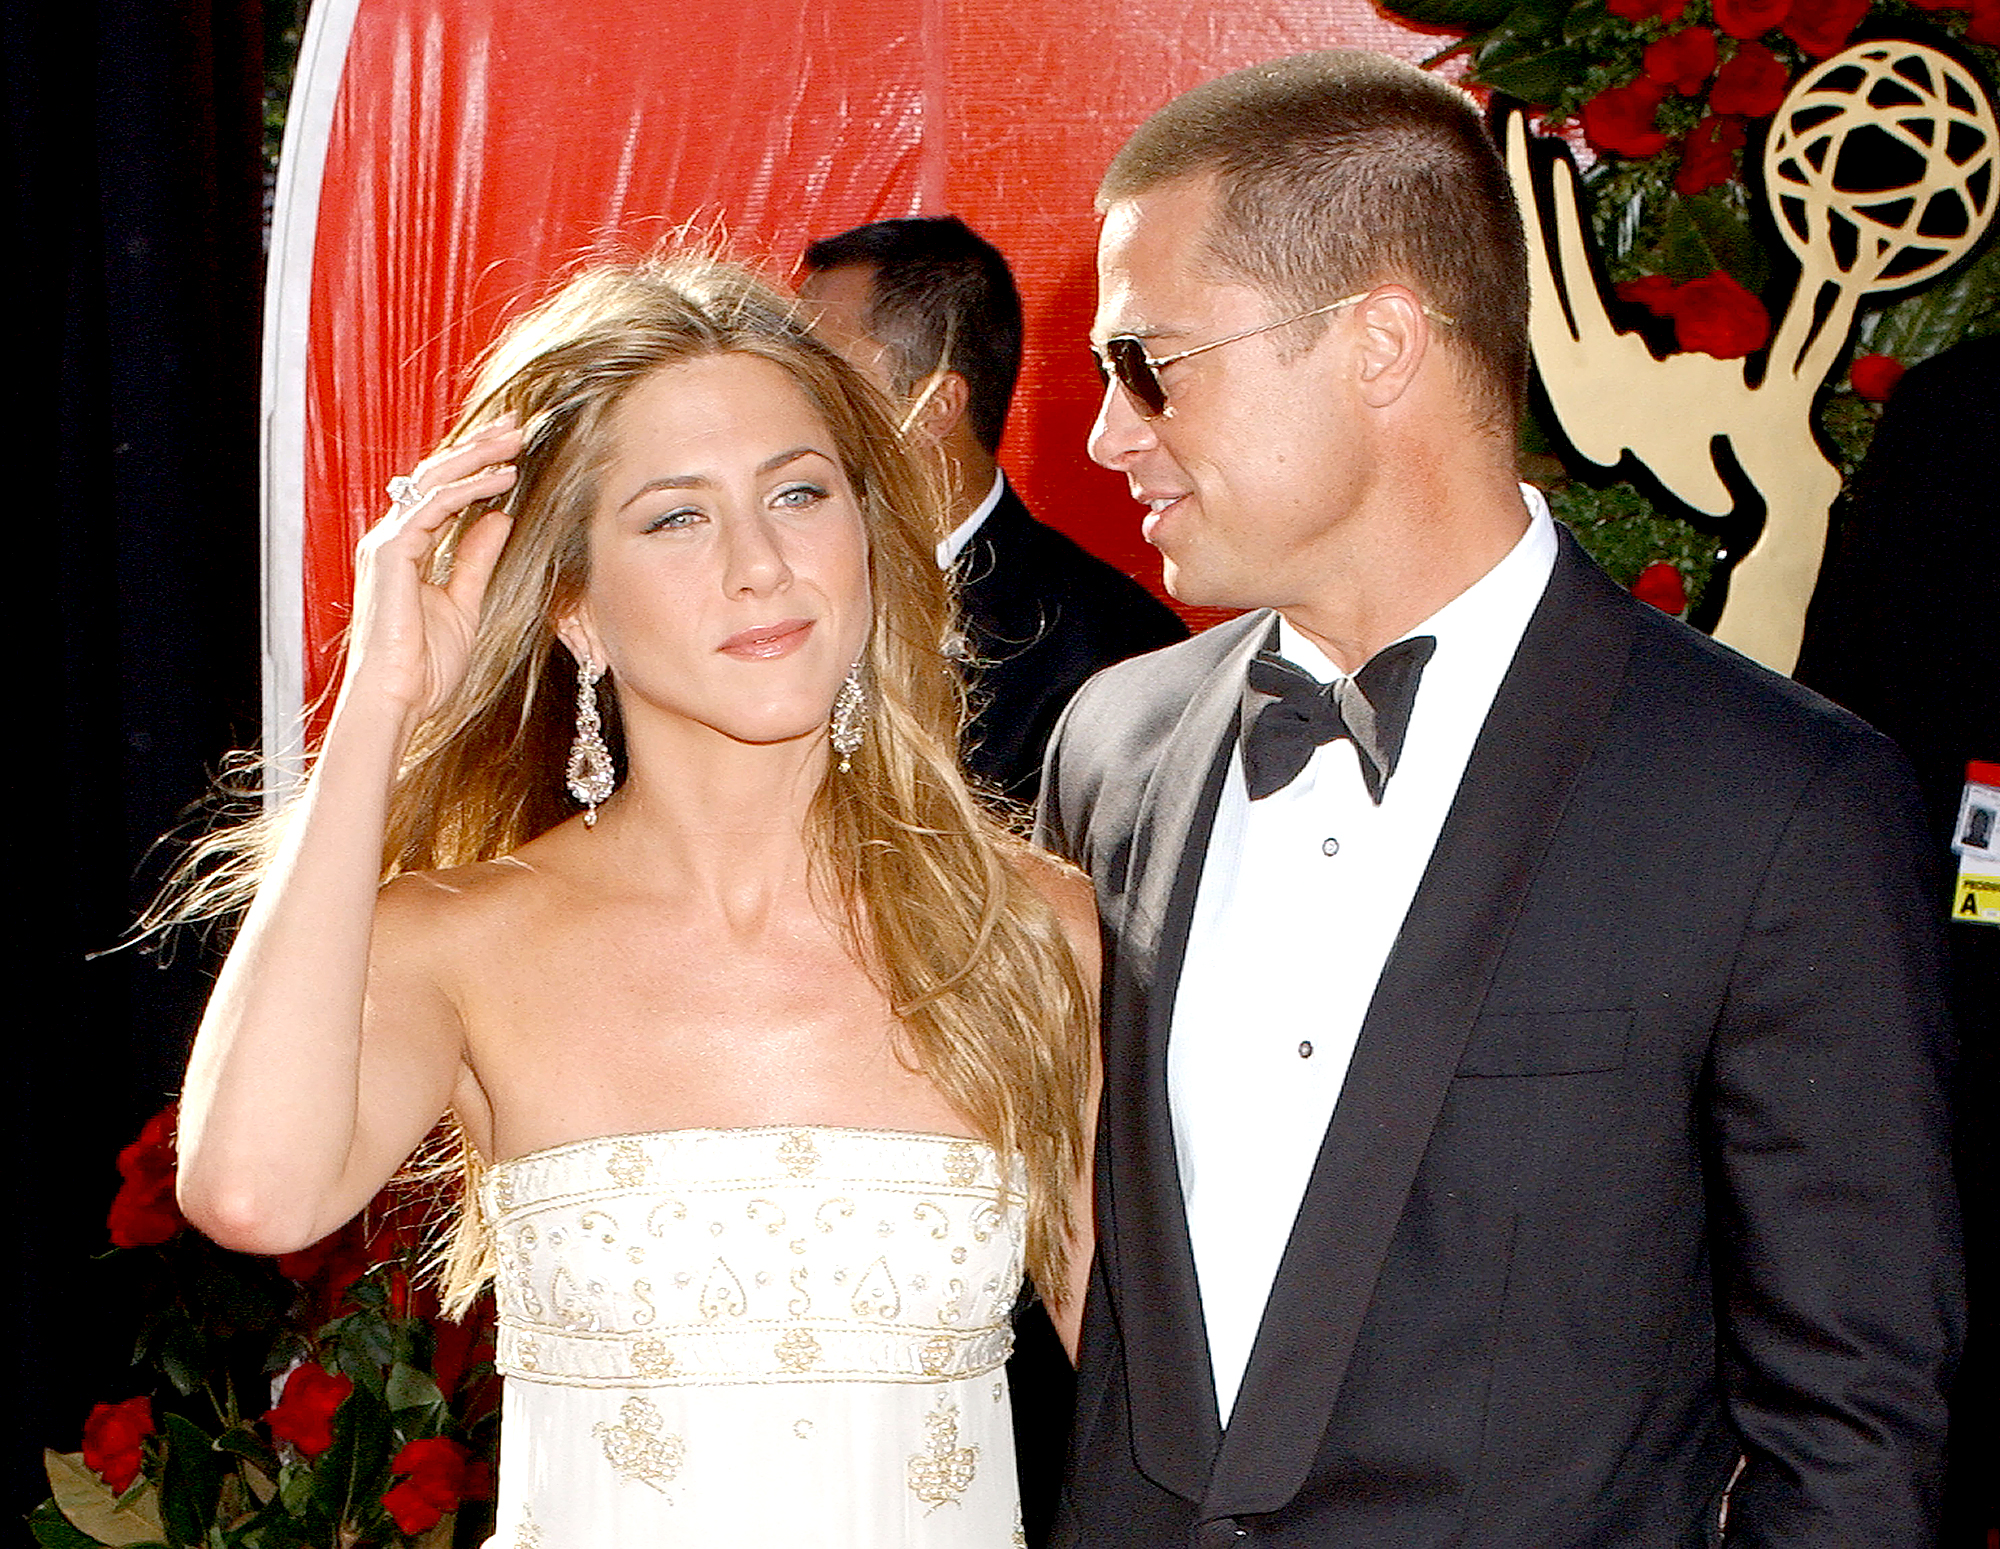 """jennifer-aniston-brad-pitt-divorce-relationship - Aniston told Diane Sawyer during a January 2004 interview that she felt Pitt was the one for her during their first date. """"It was weird,"""" she said reflecting on the date."""